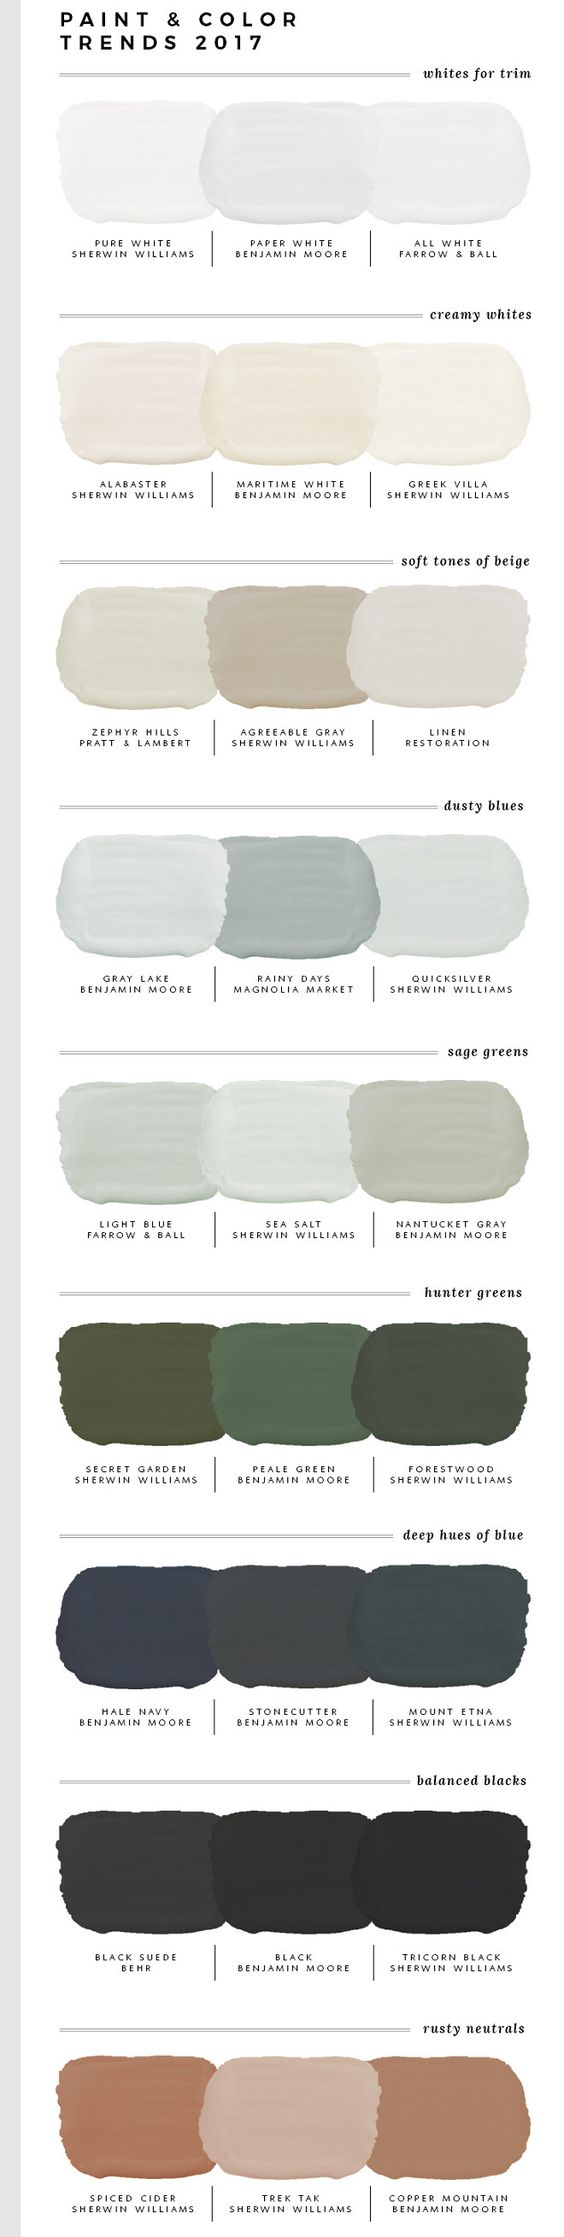 Paint and Color Trends 2017